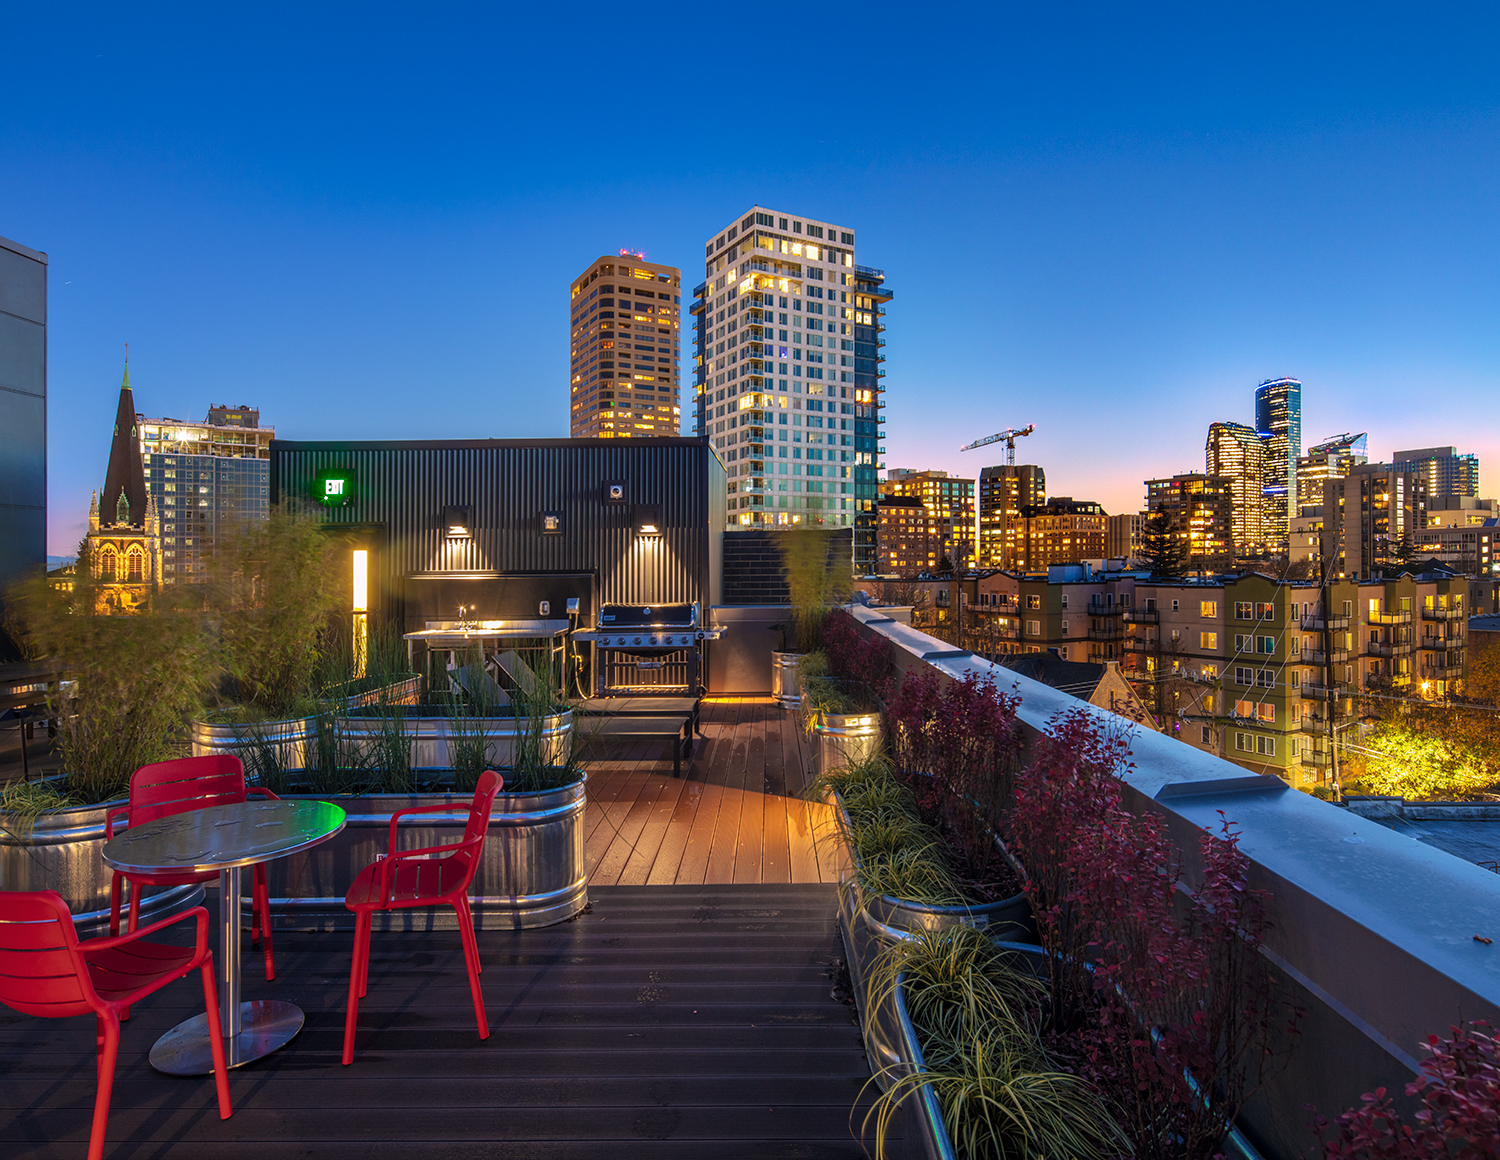 RooftopDeck